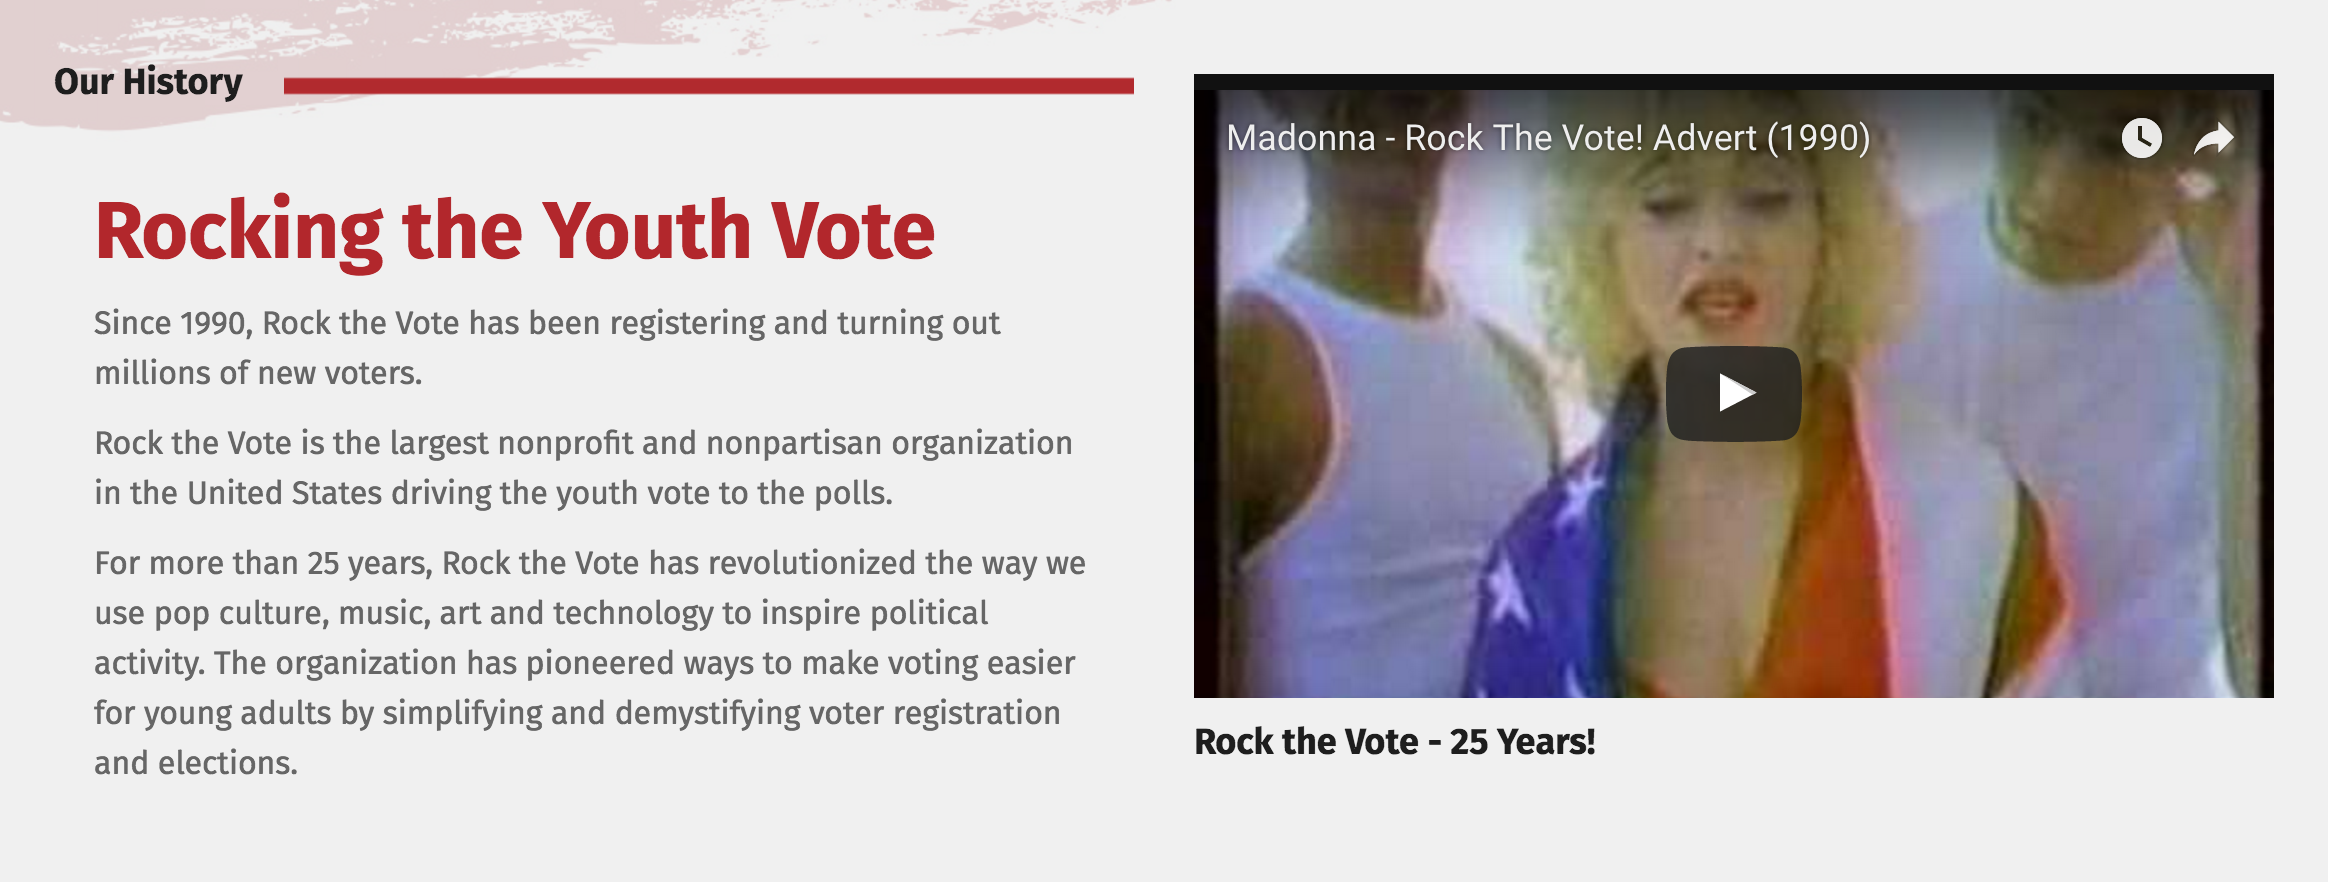 rock the vote about us